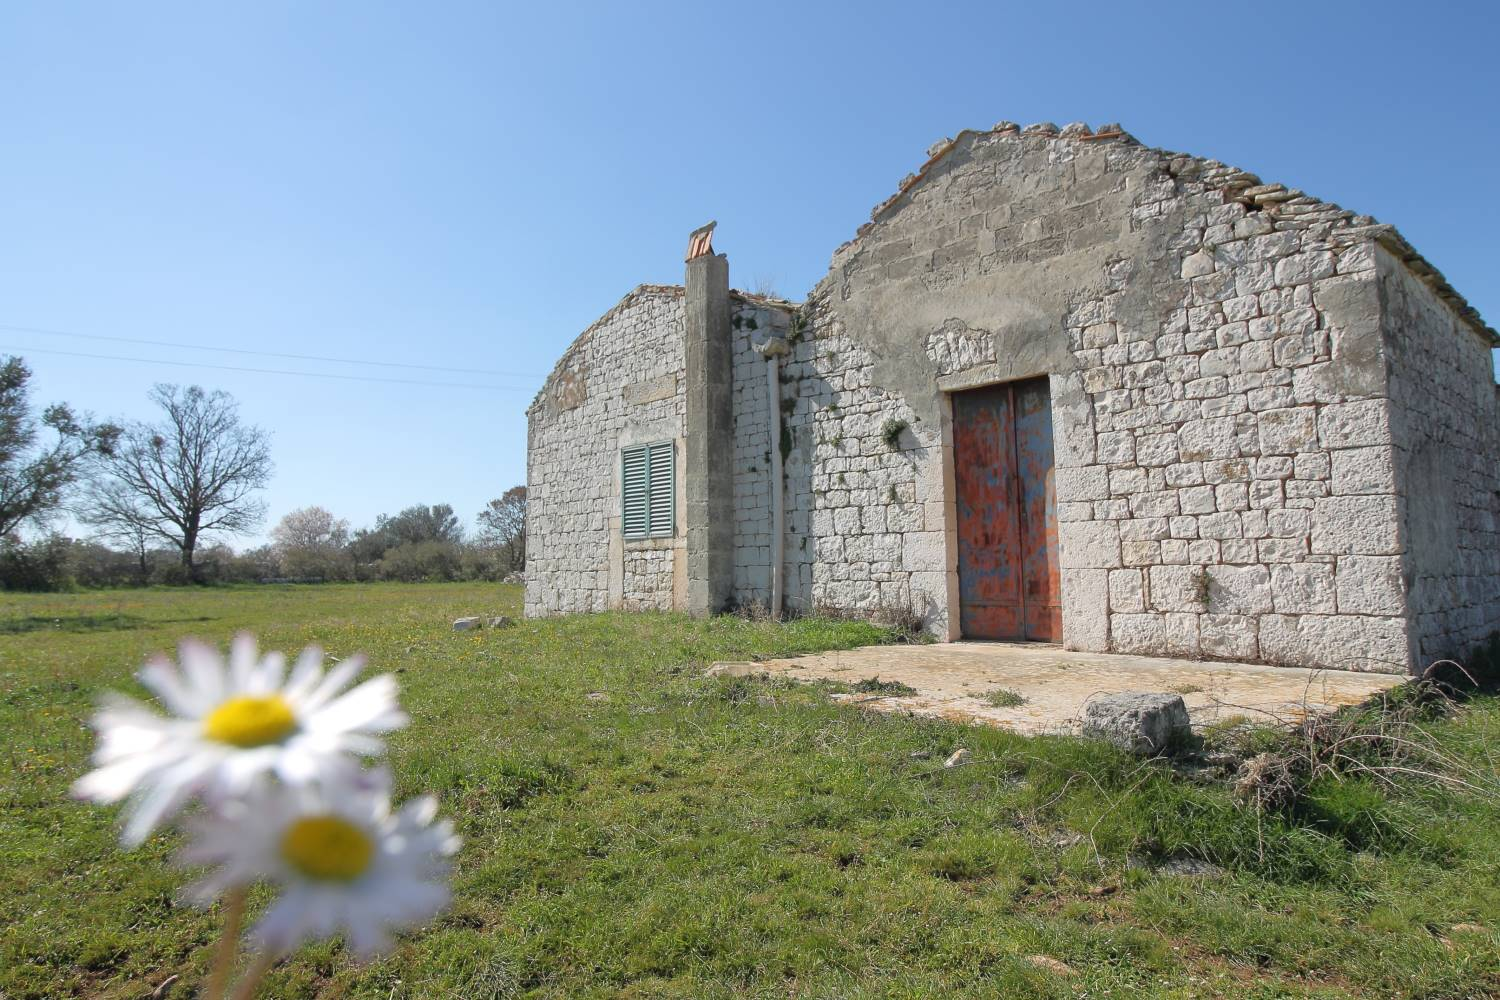 NOCI, Farmhouse for sale of 80 Sq. mt., Be restored, Heating Non-existent, Energetic class: G, Epi: 165 kwh/m2 year, placed at Ground, composed by: 3